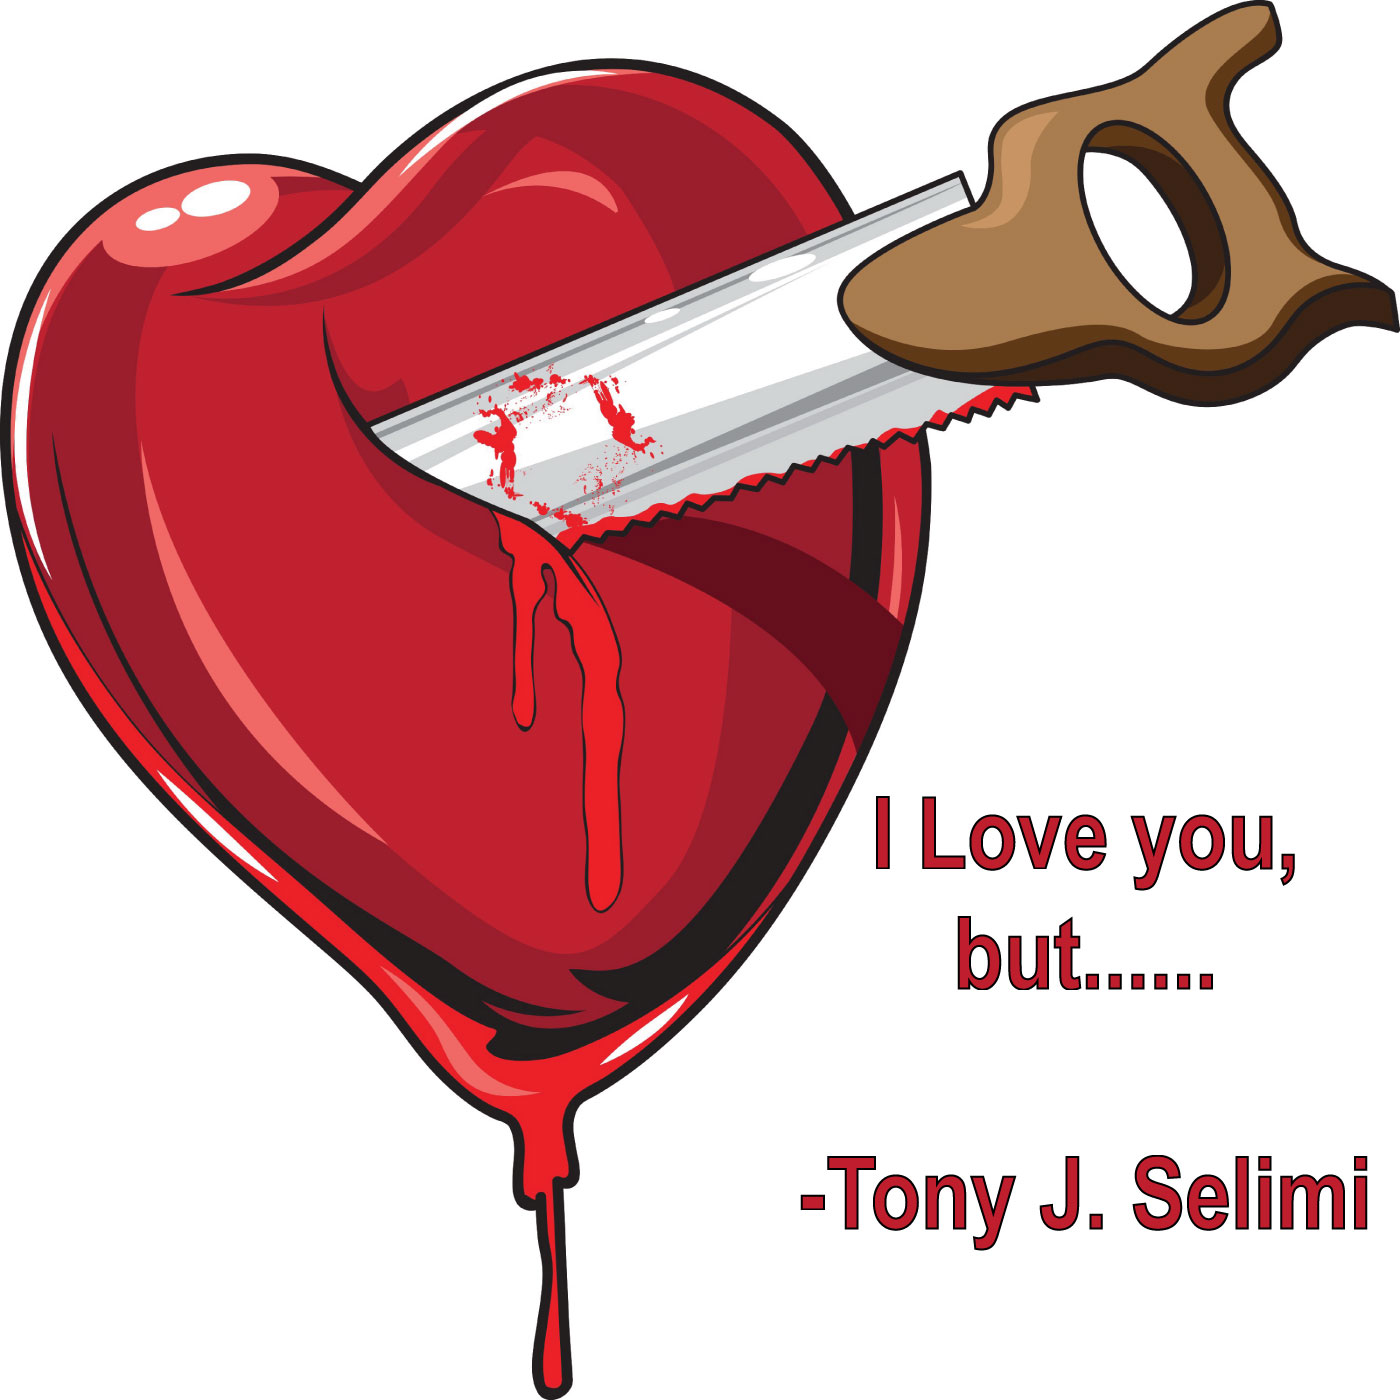 I-Love-you-Tony-J-Selimi